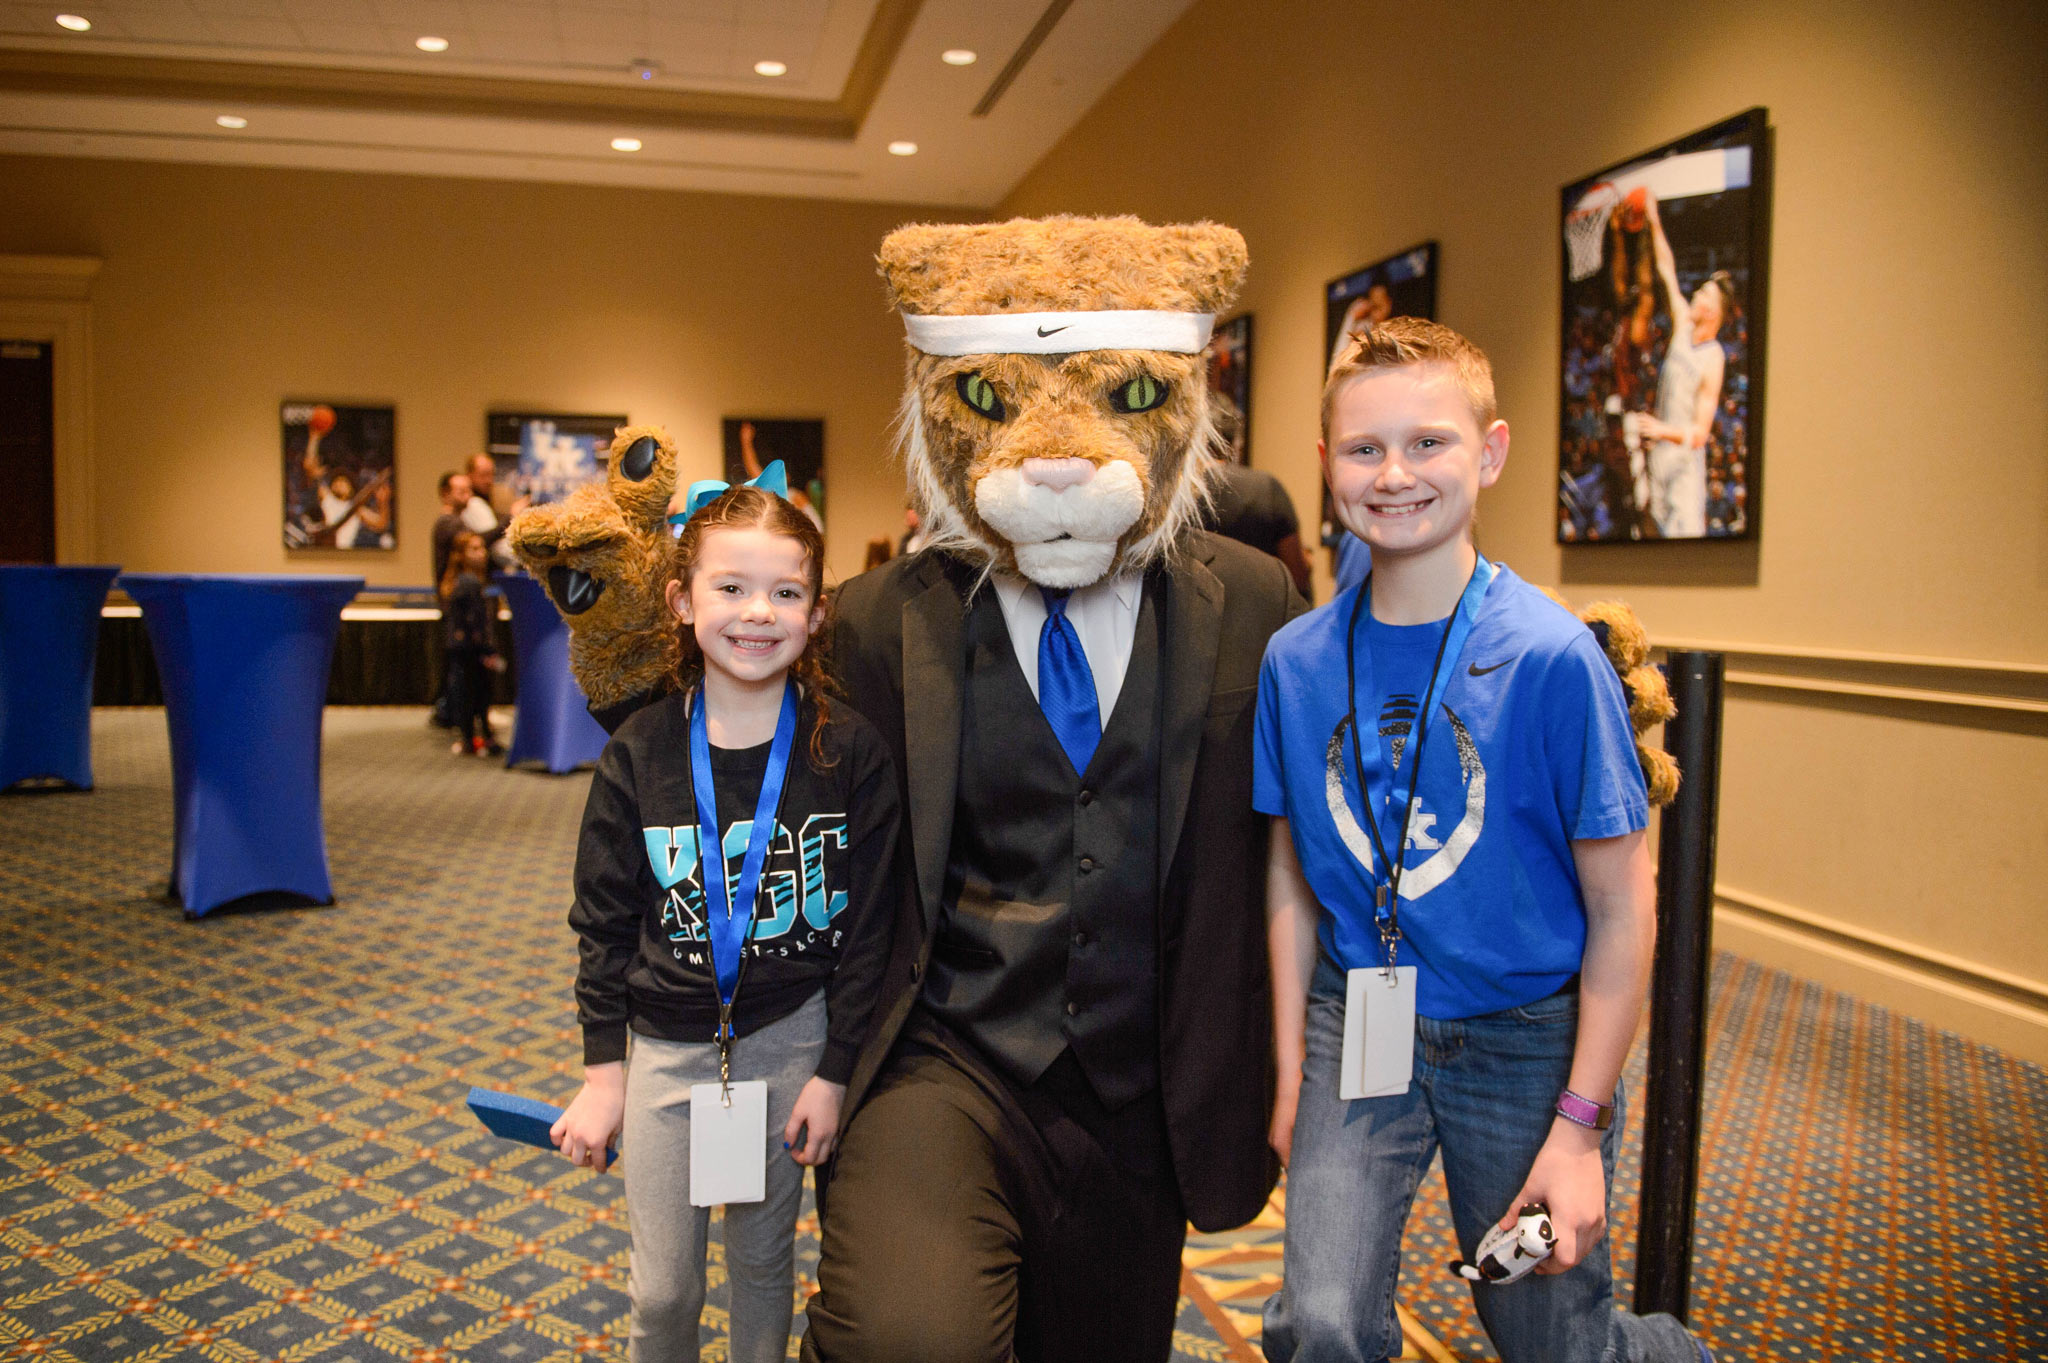 Izzy and Dalton pause for a photo with the UK Wildcat mascot in a suit.